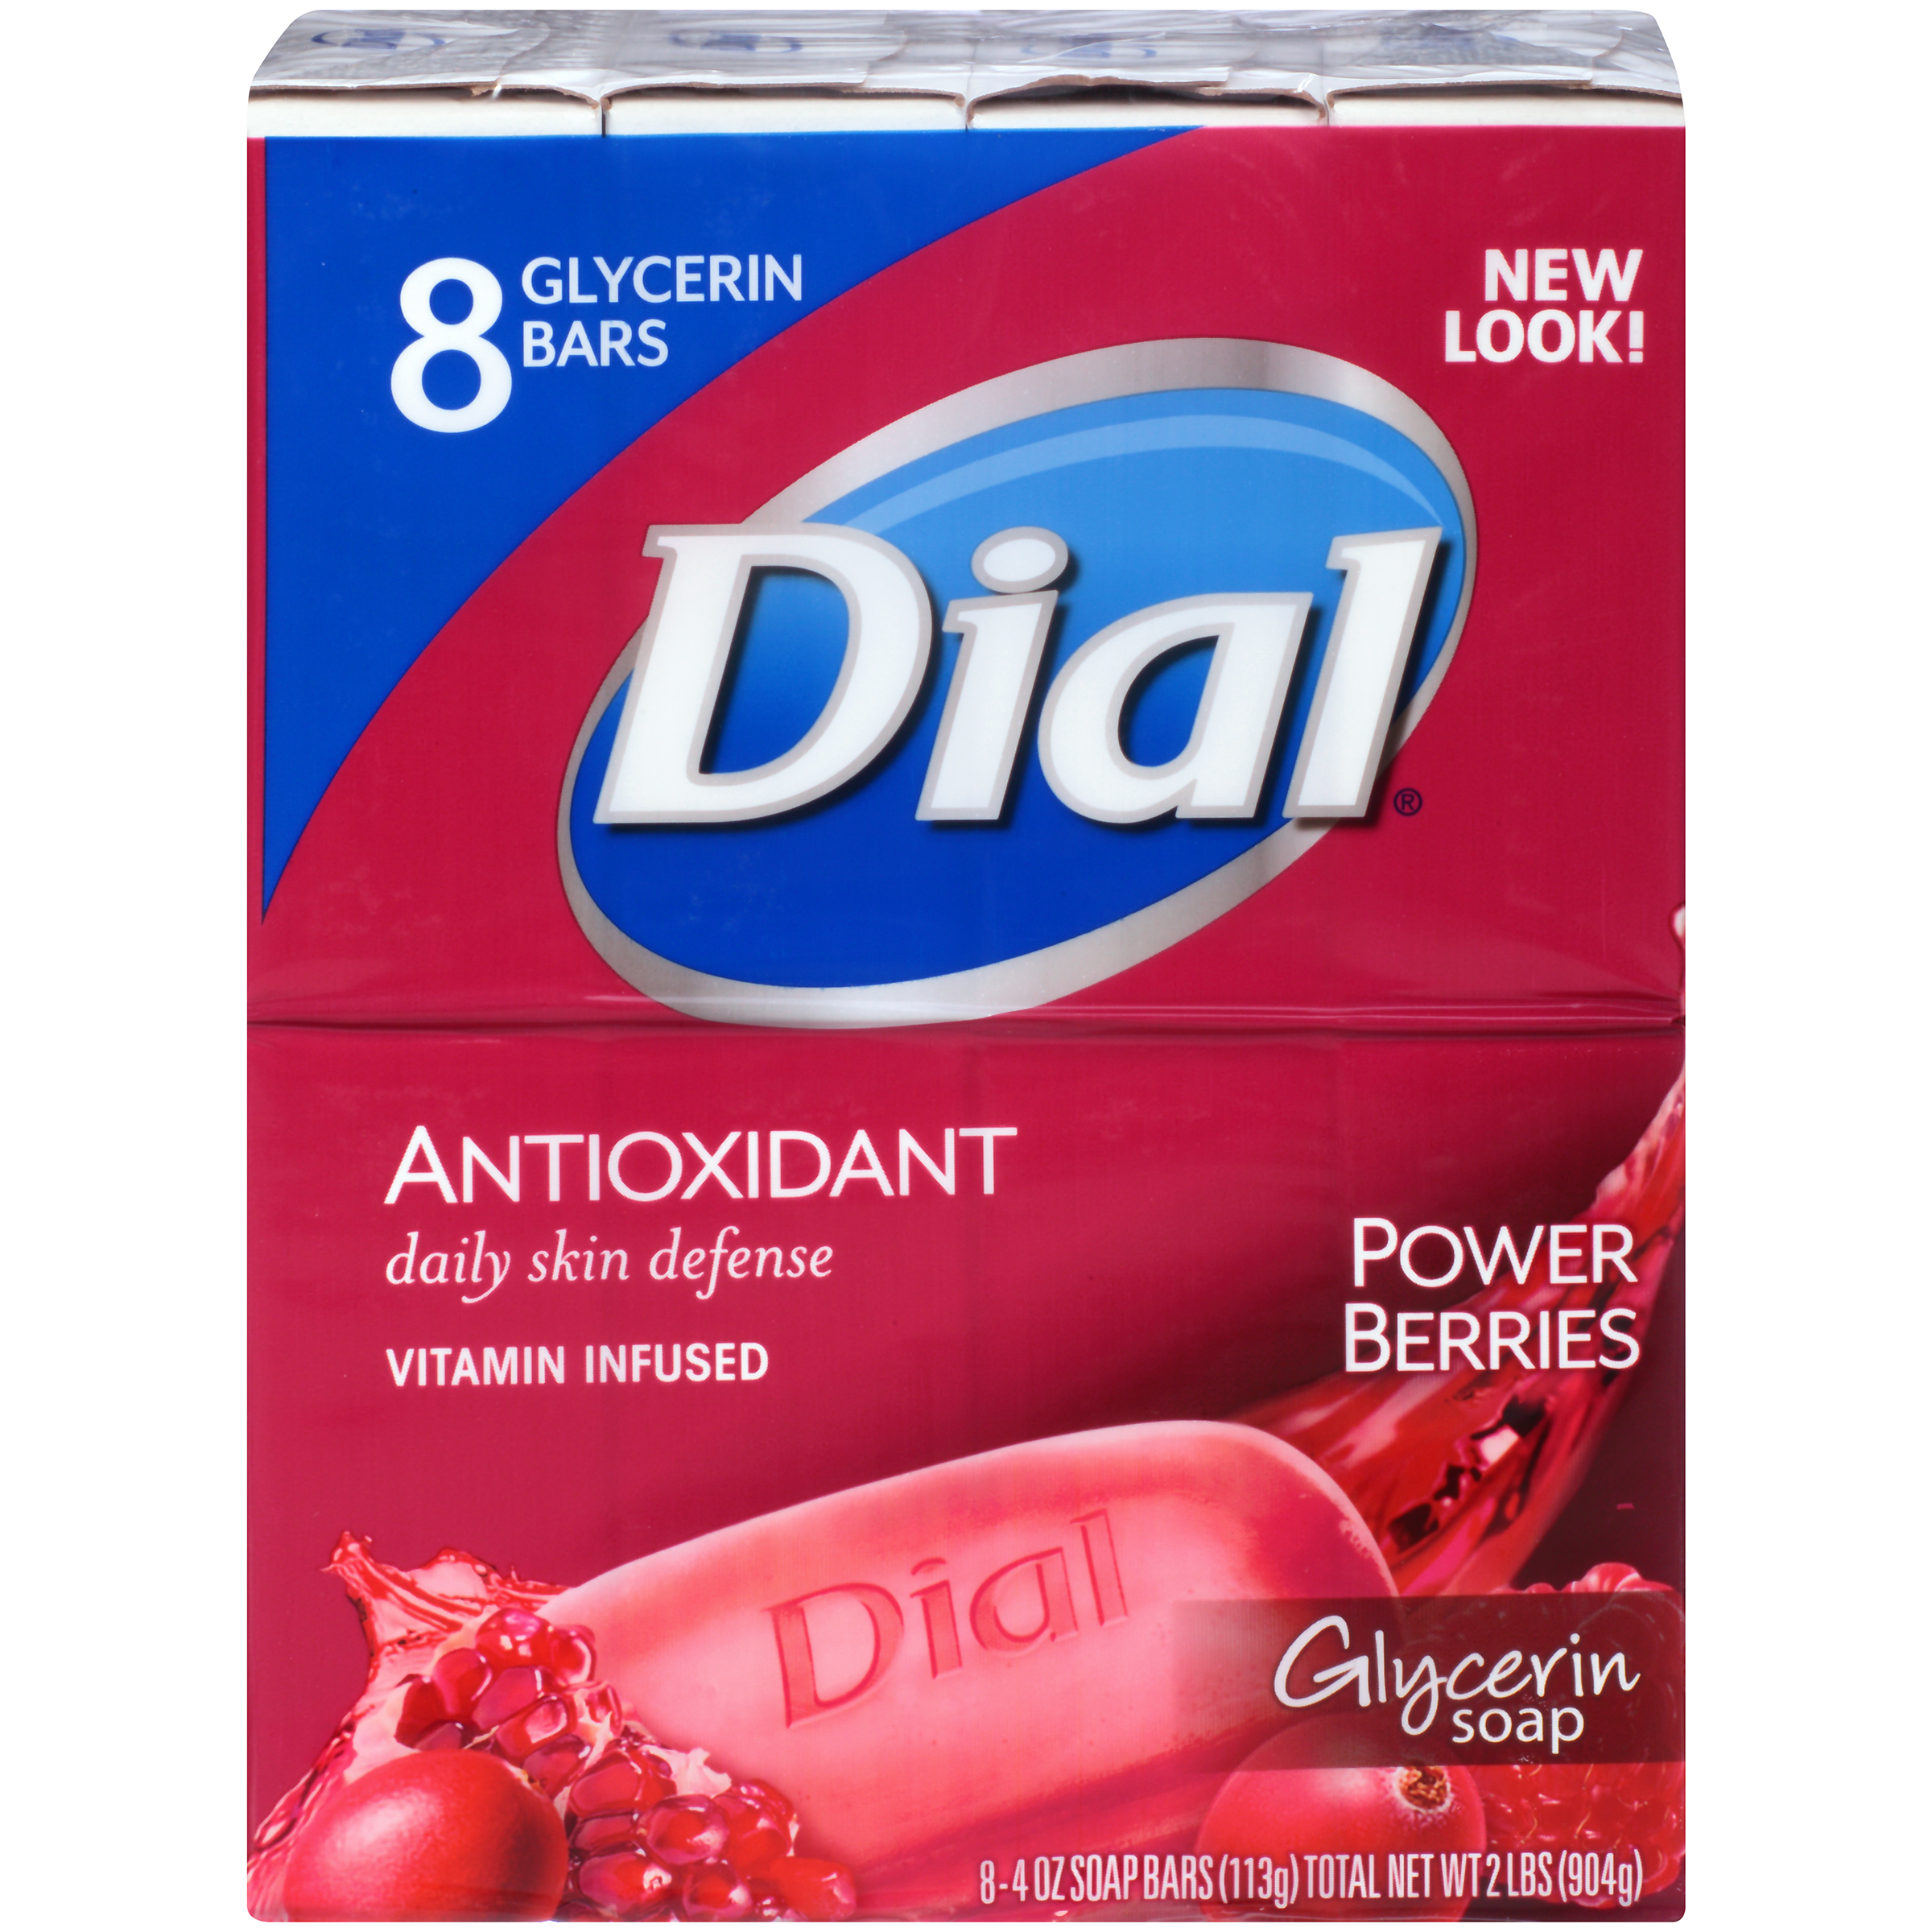 Dial Glycerin Bar Soap, Power Berries, 4 Ounce Bars, 8 Count